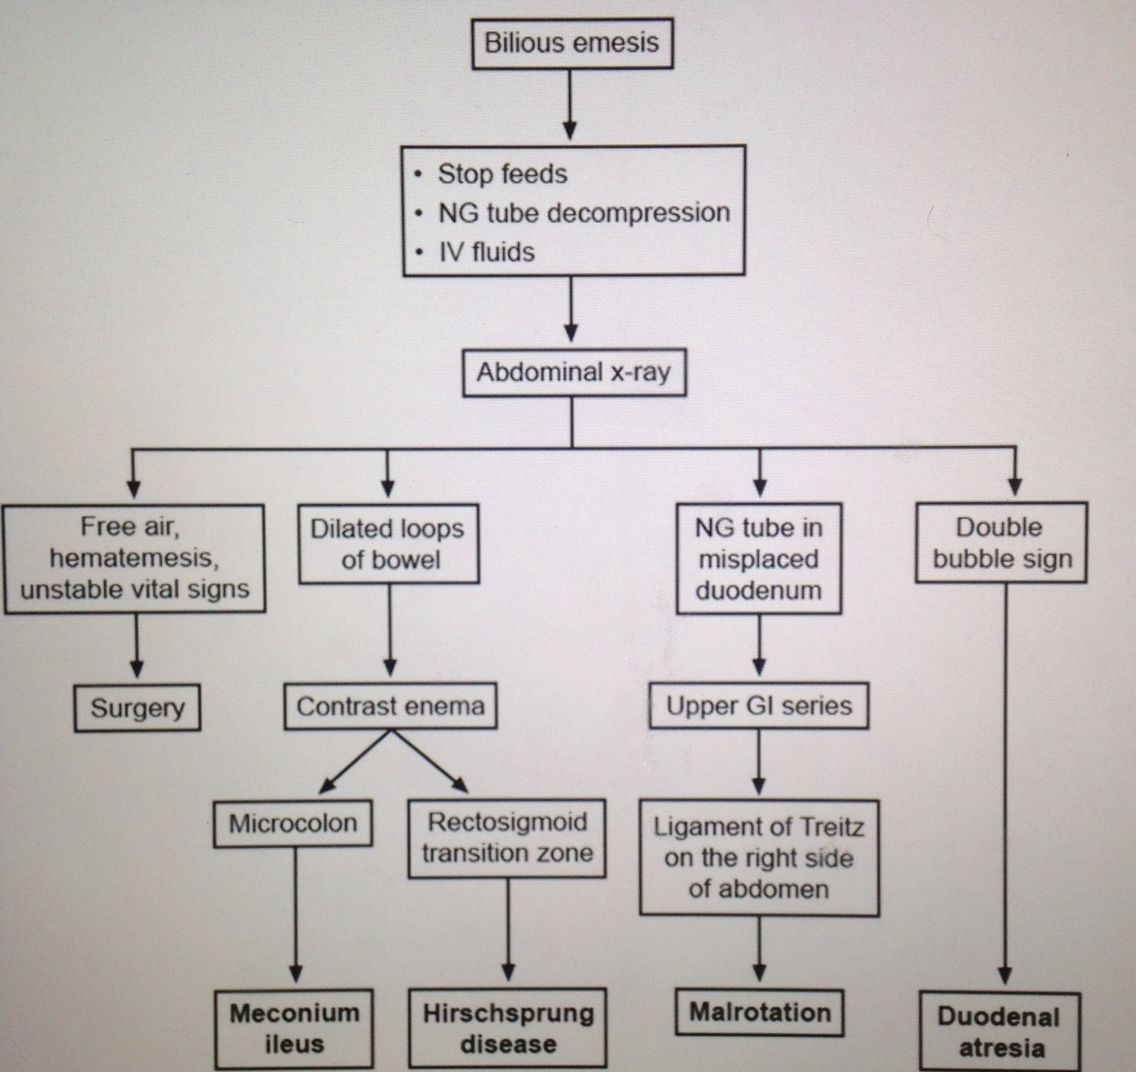 Evaluation of bilious emesis    First things to do are stop feeding